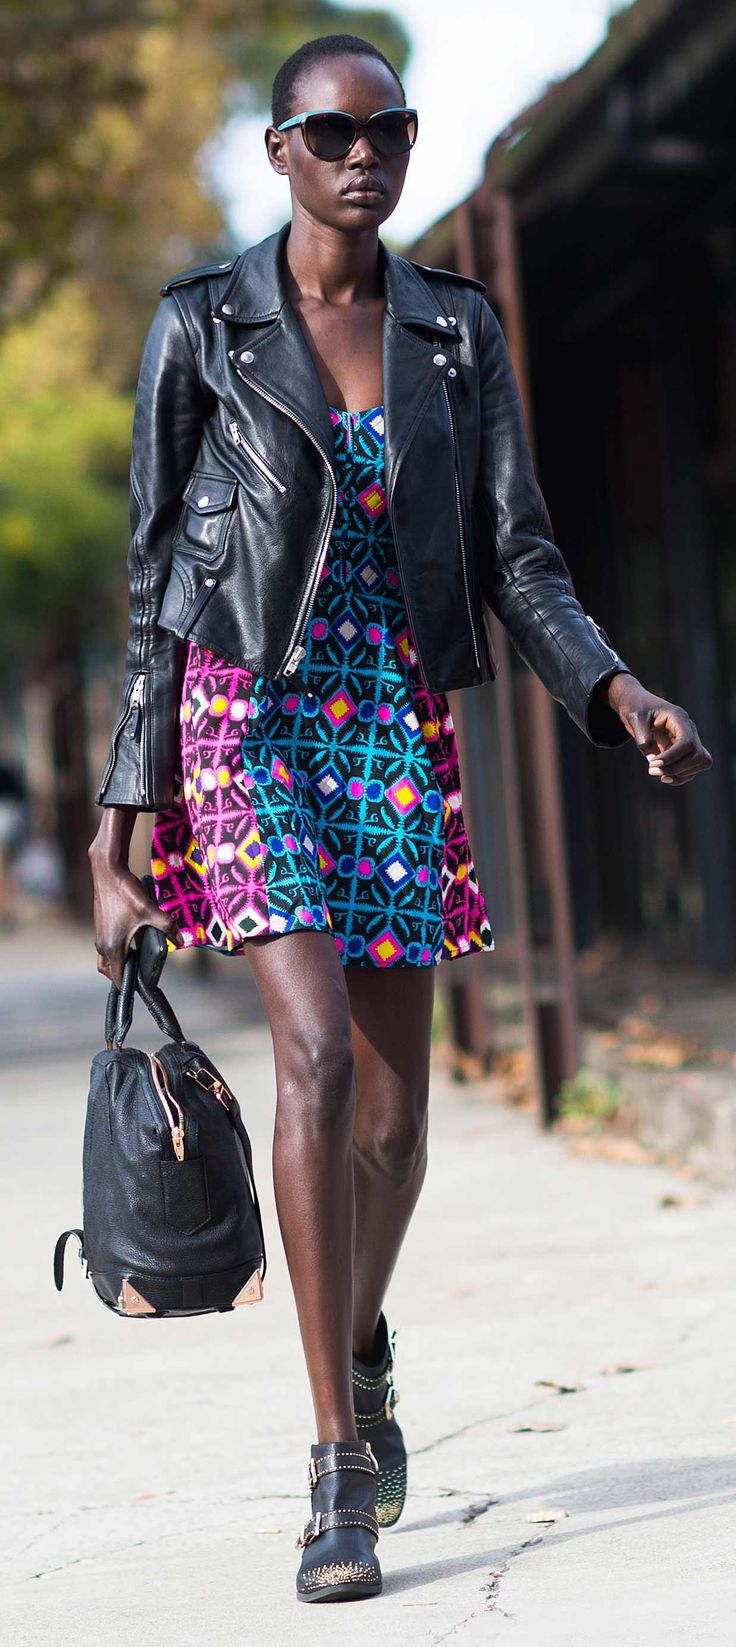 Try a bold printed dress with model-off-duty staples like a leather moto jacket and studded boots